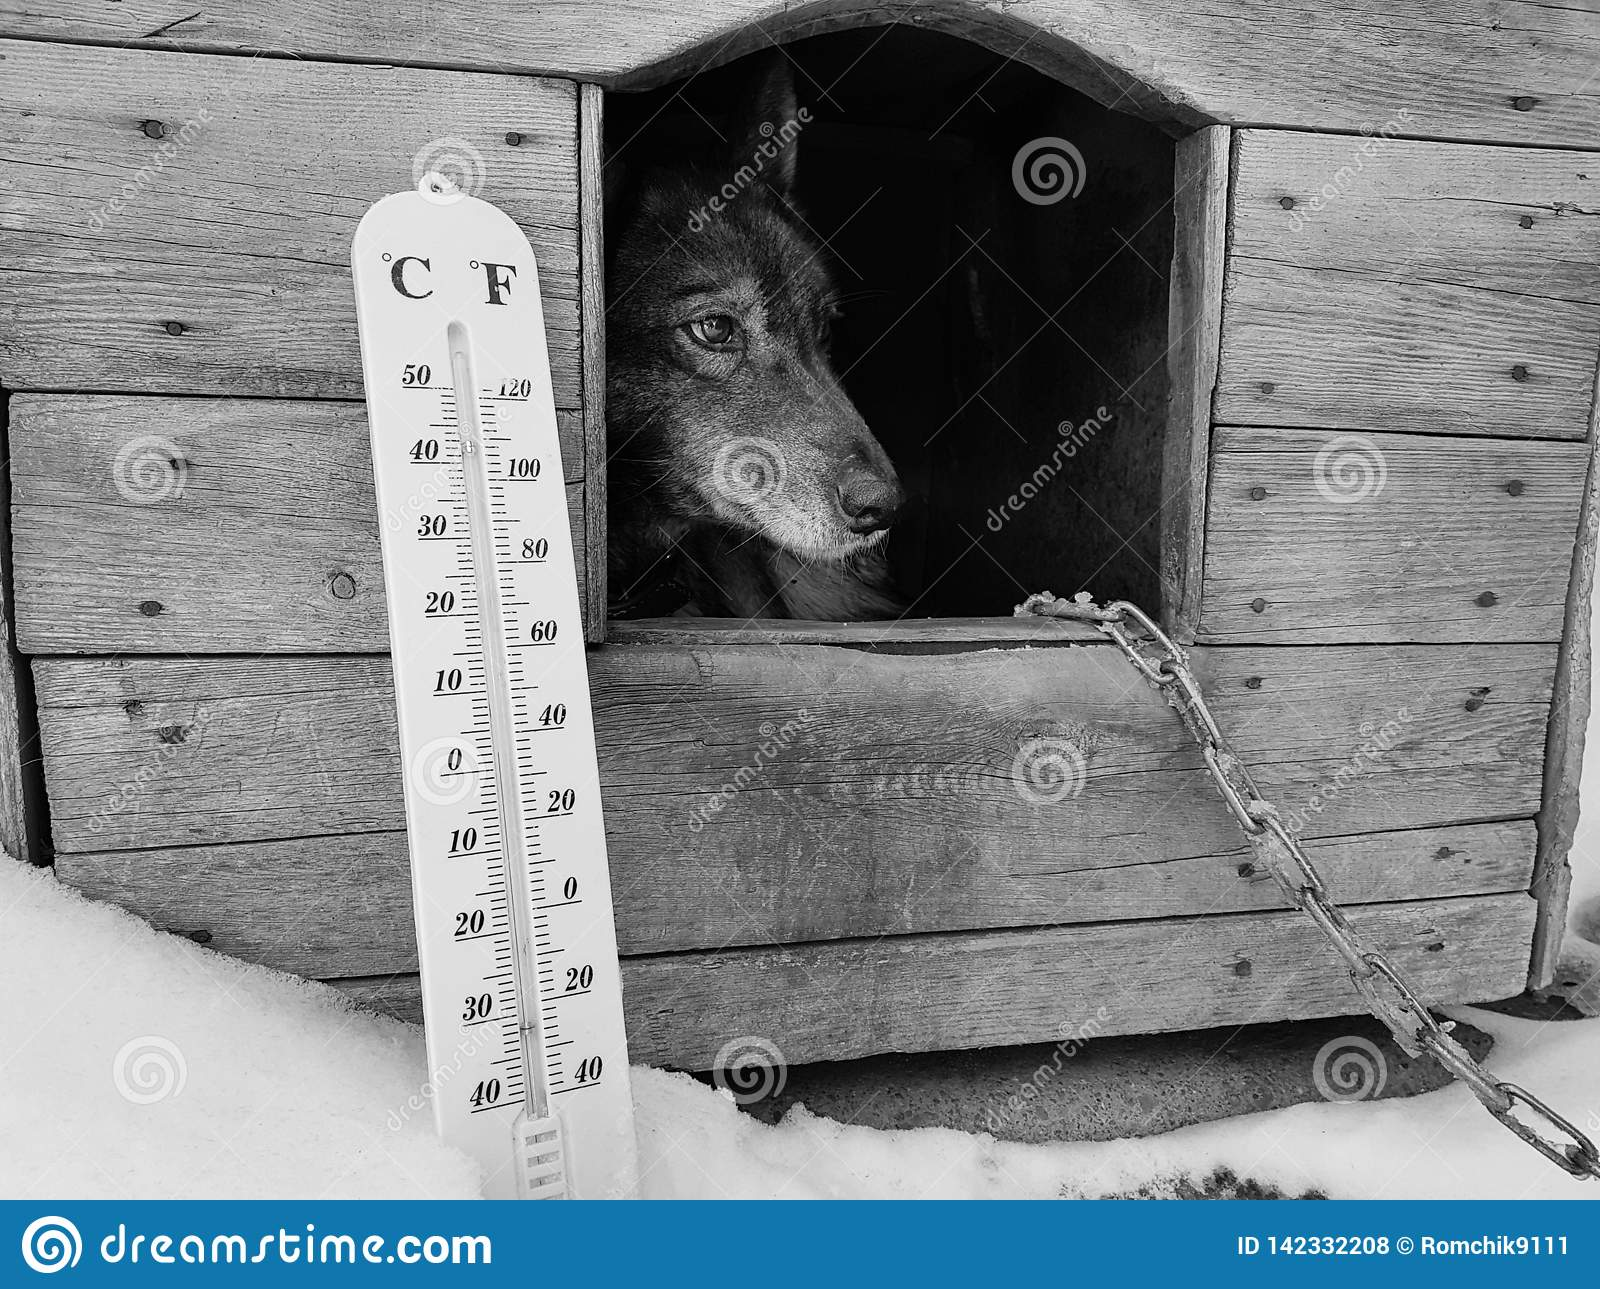 Street thermometer with a temperature of Celsius and Fahrenheit and a dog breed Laika in a doghouse